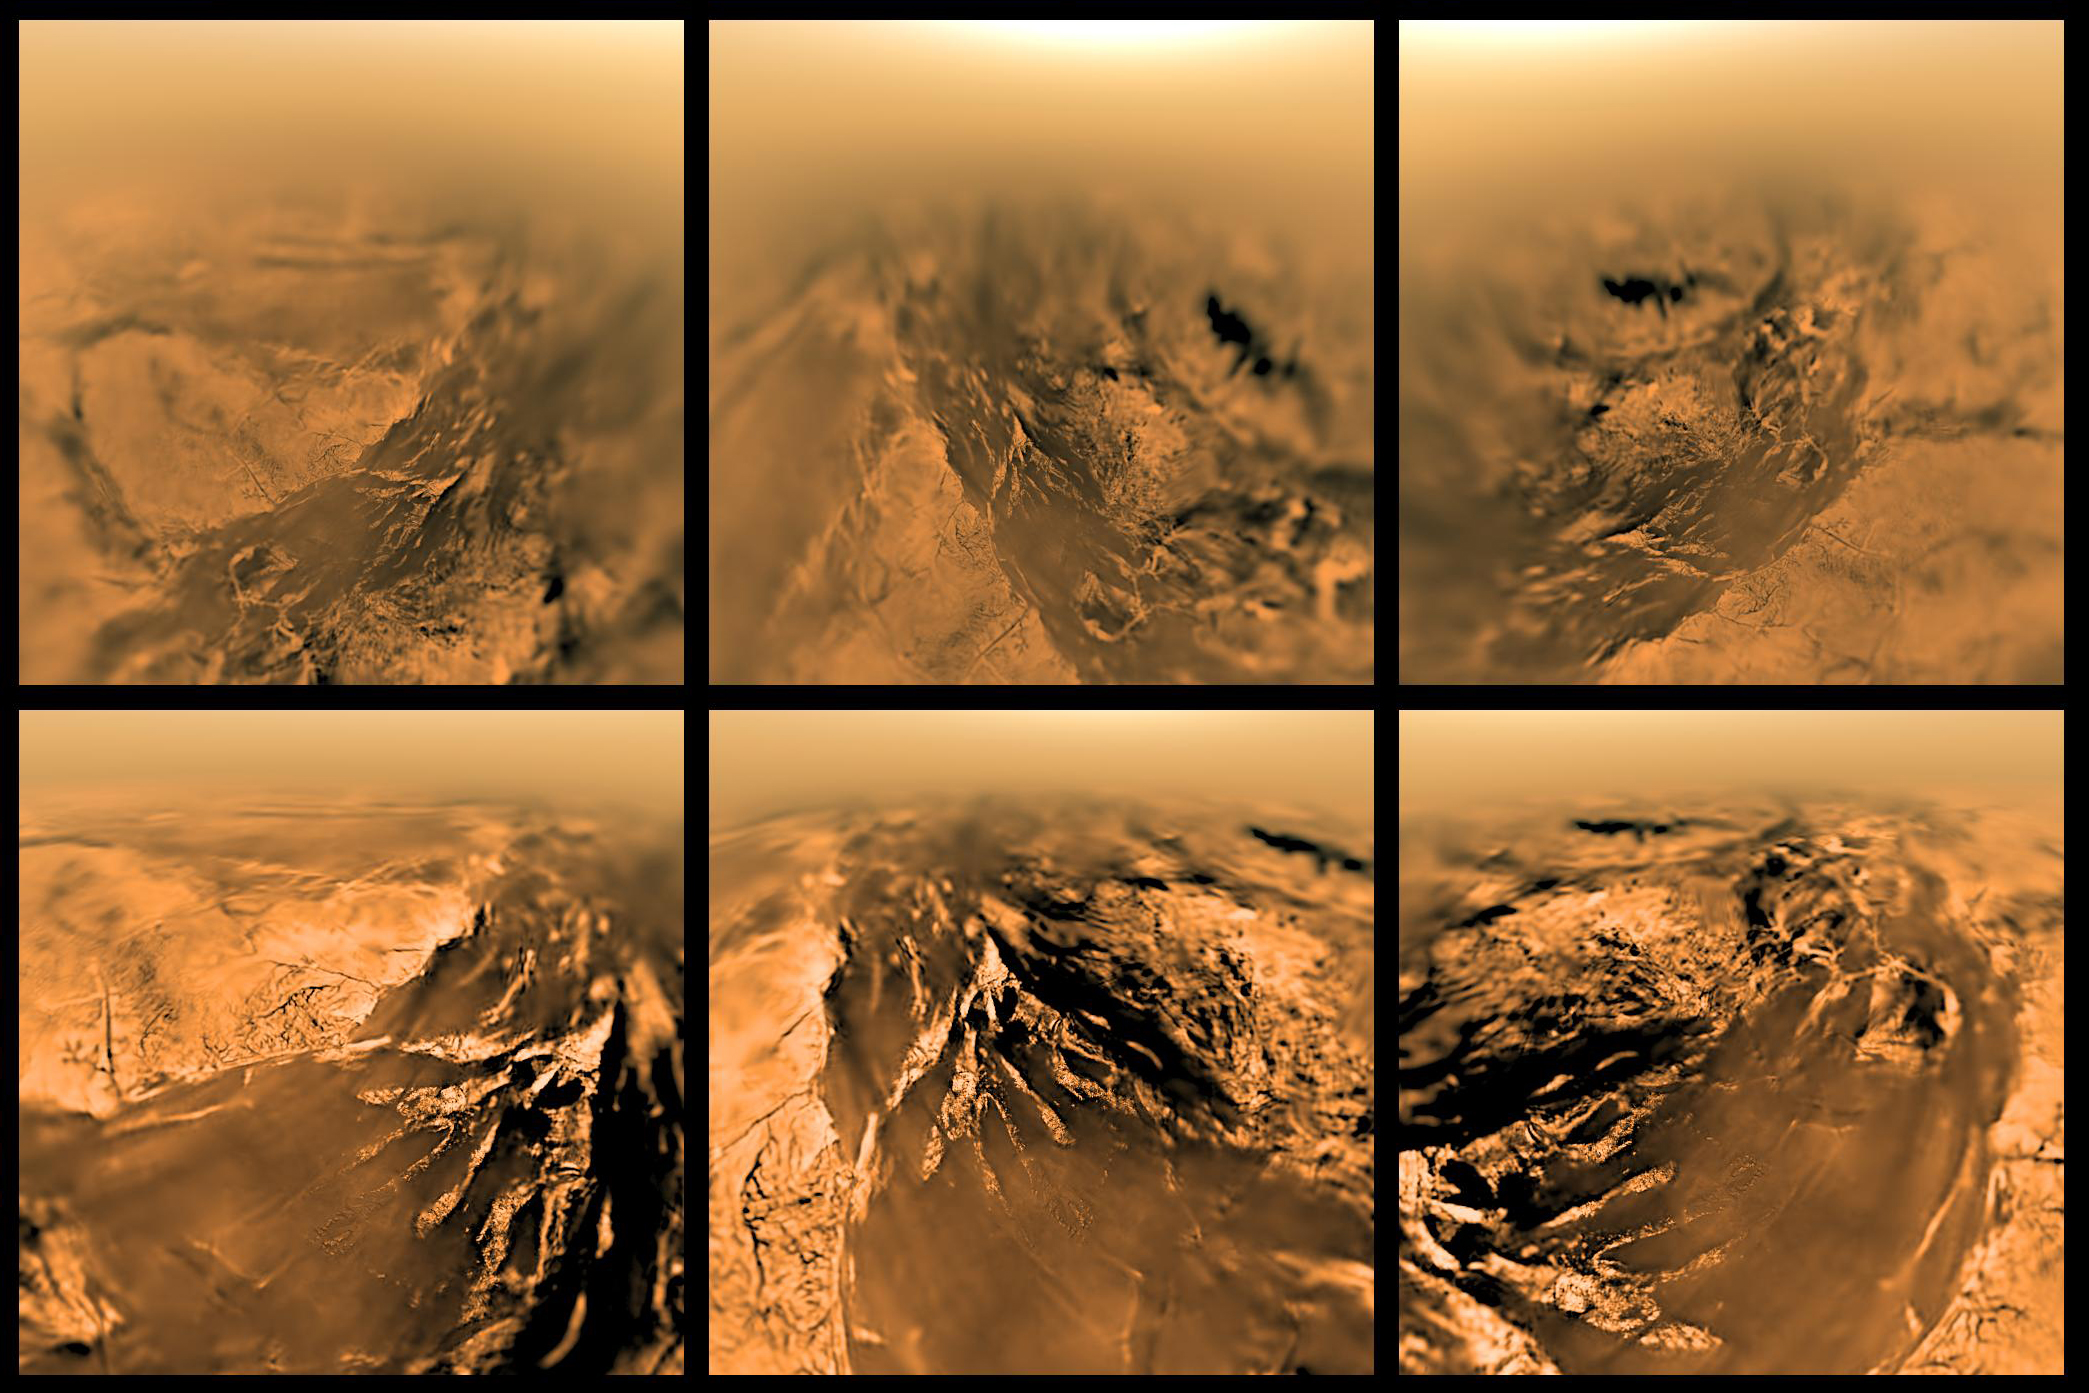 Extract from ESA/NASA/JPL/University of Arizona  Arial Views of Titan Around the Huygens Landing Site  (2015).Source: http://sci.esa.int/science-e-media/img/2b/Titan-DISR-5altitudes-composite.jpe